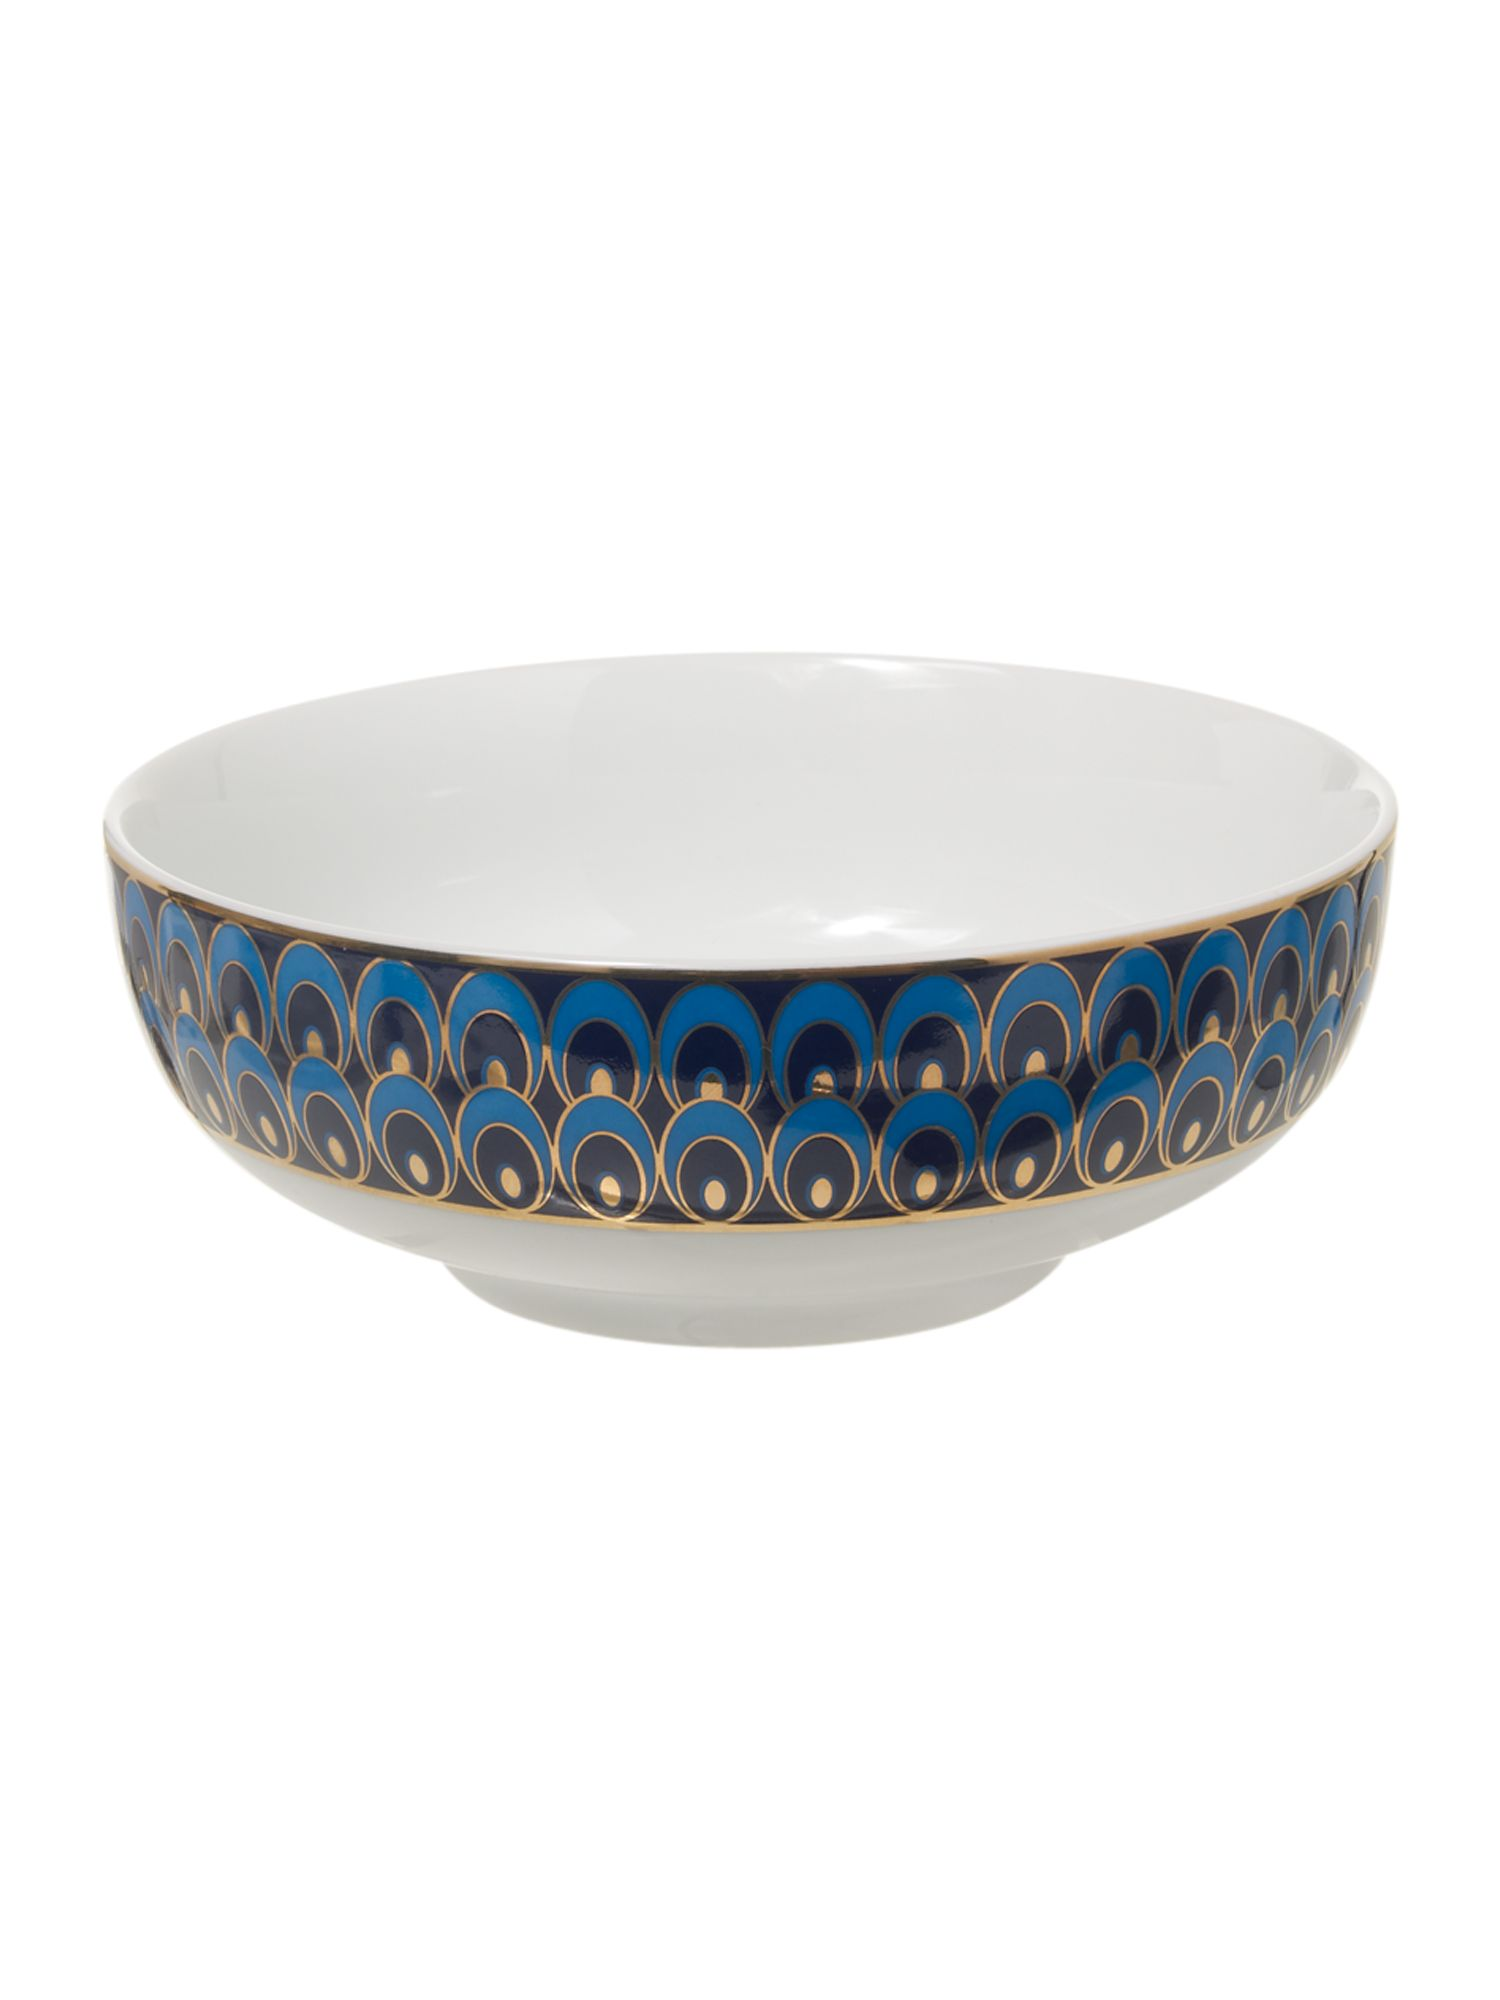 Peacock cereal bowl